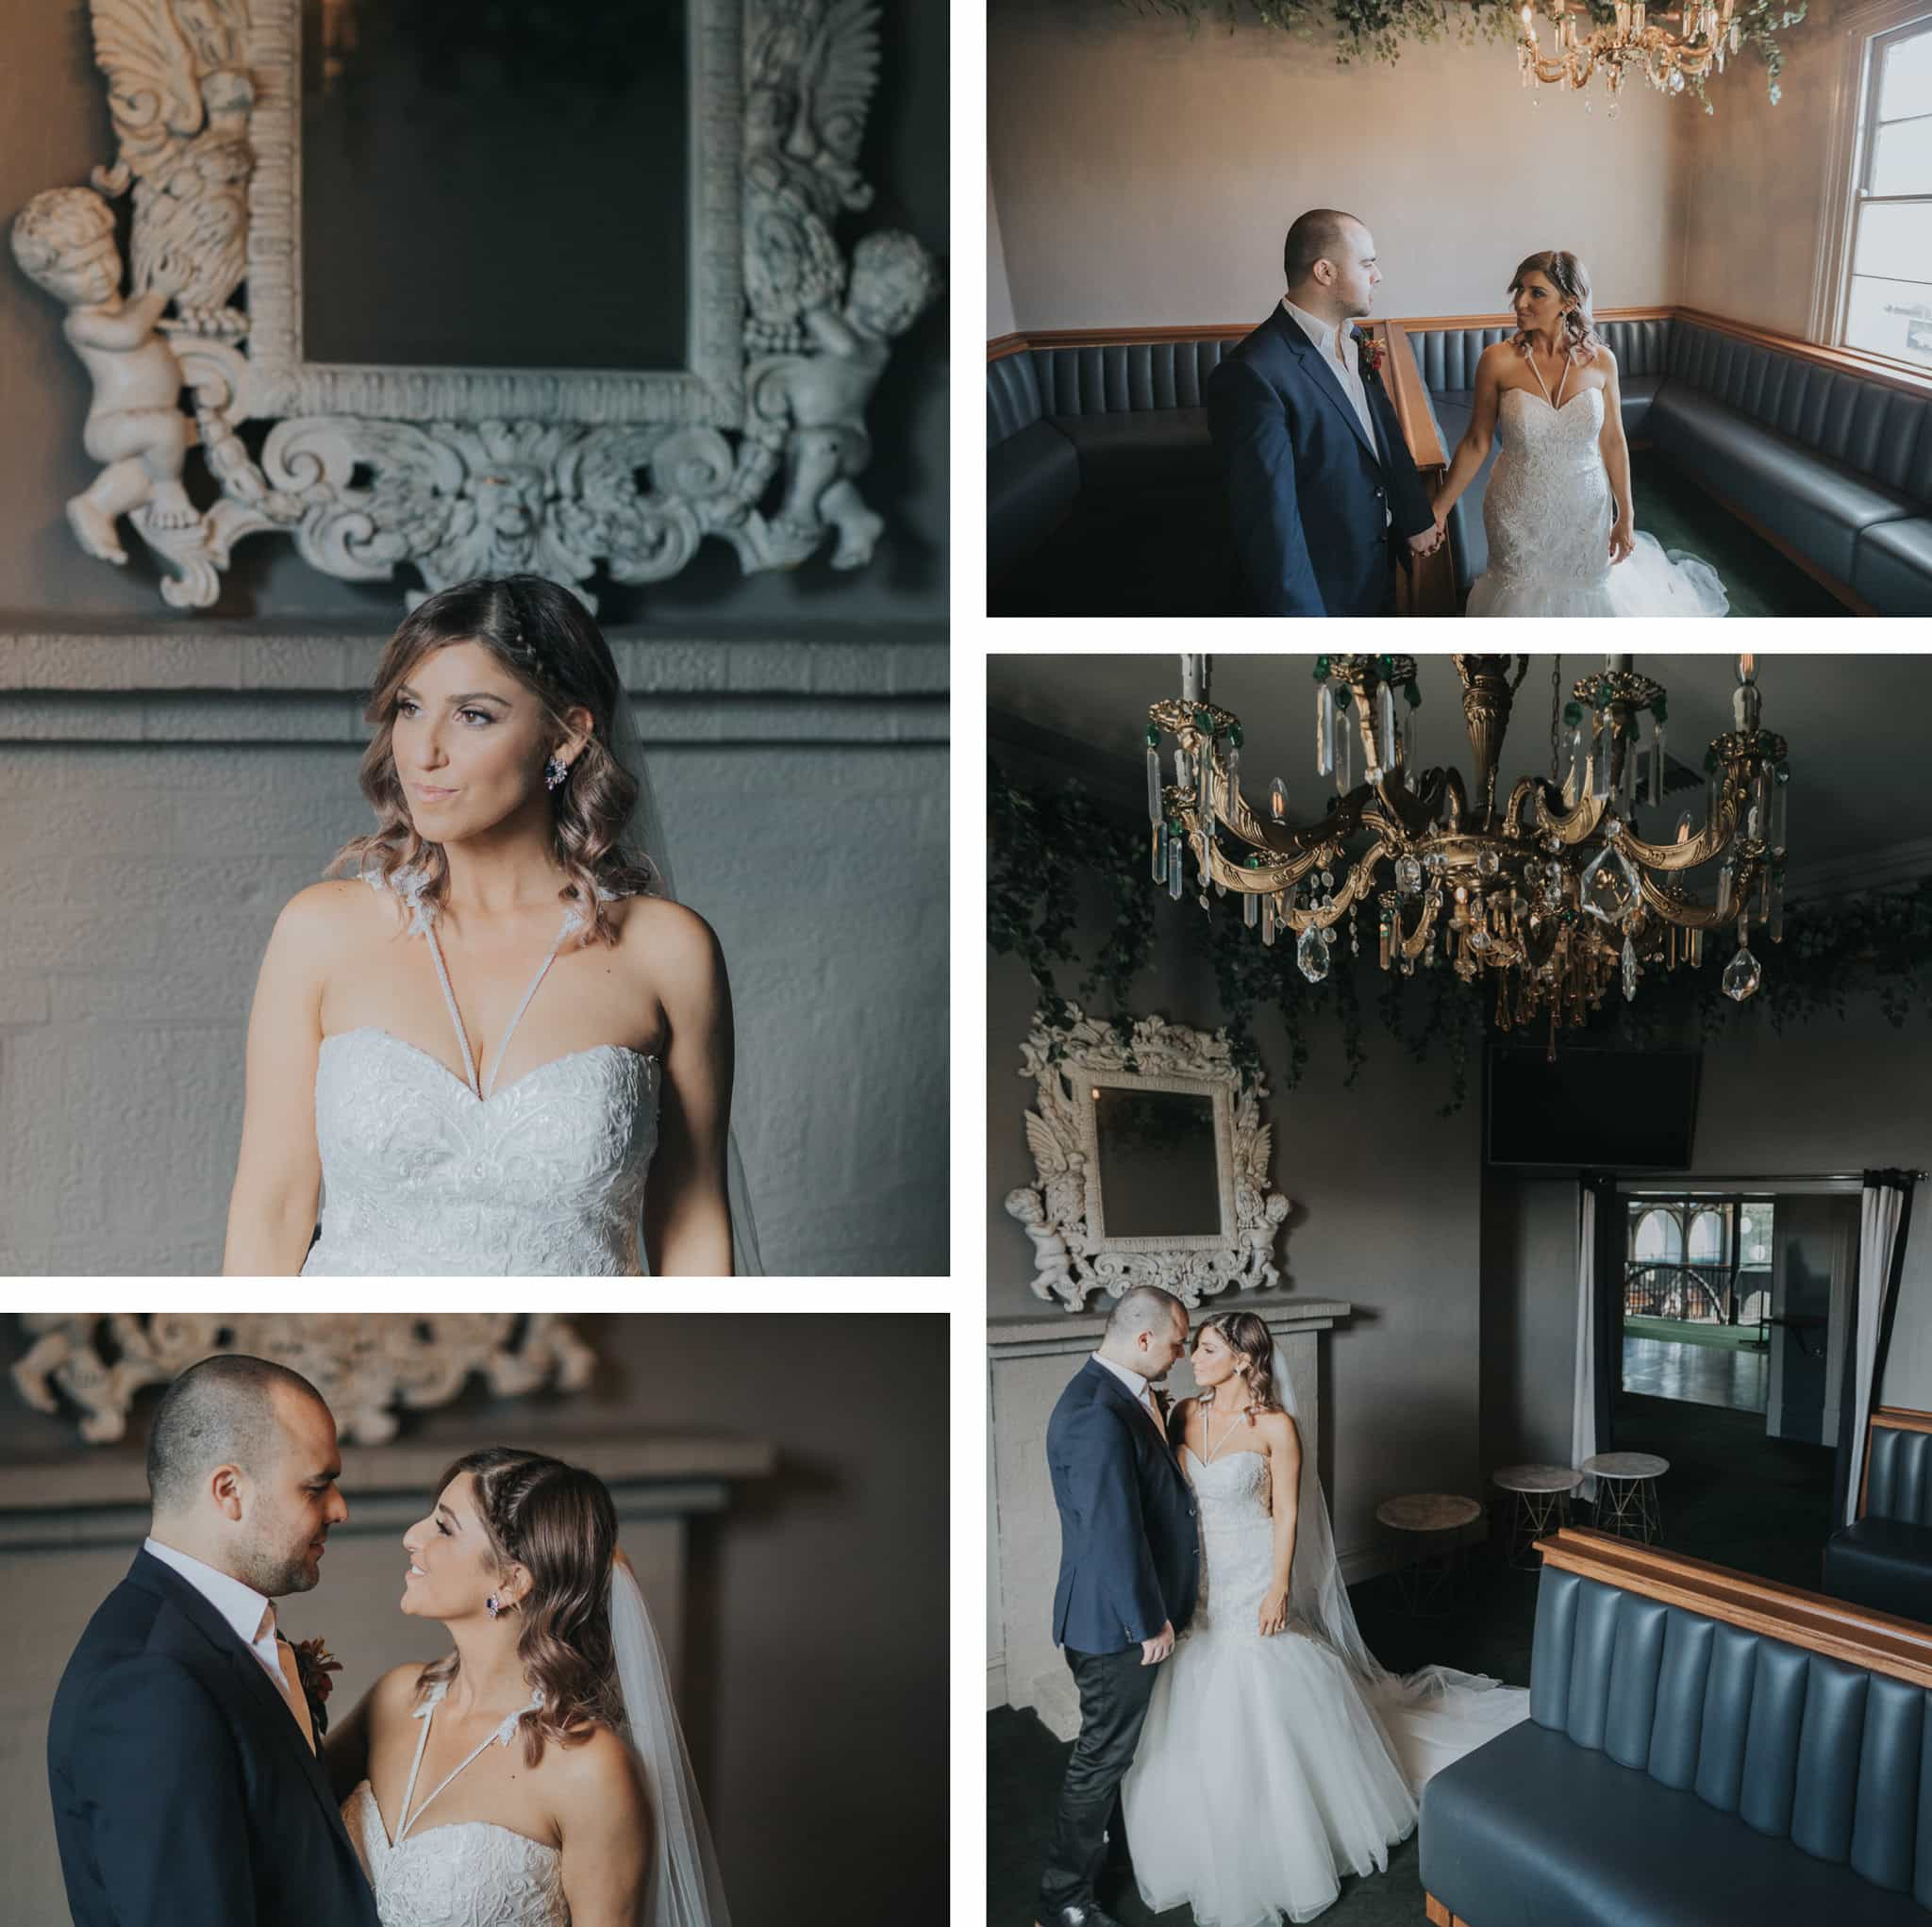 creative, fun and stylish wedding photographer in Melbourne